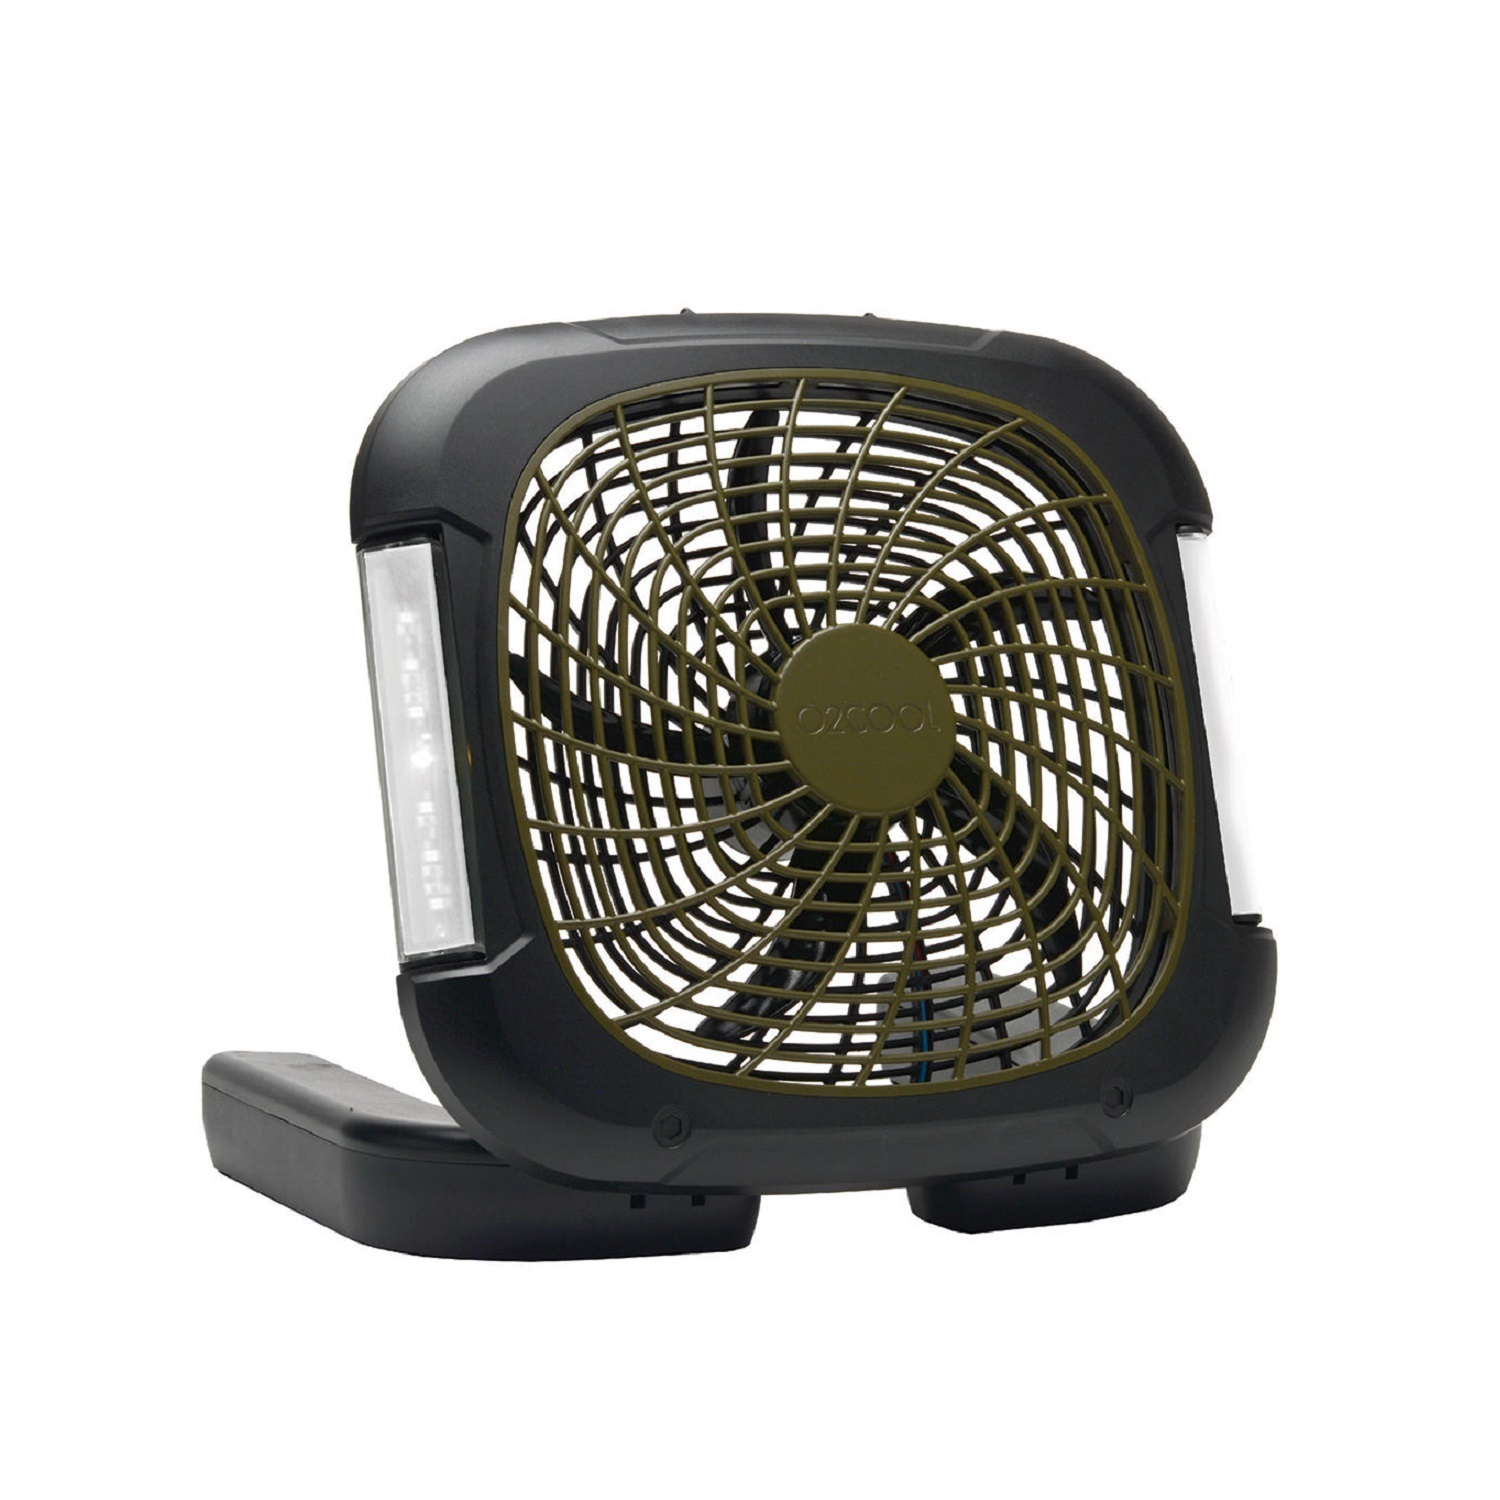 "O2COOL 10"" Portable Camp Fan with Light"